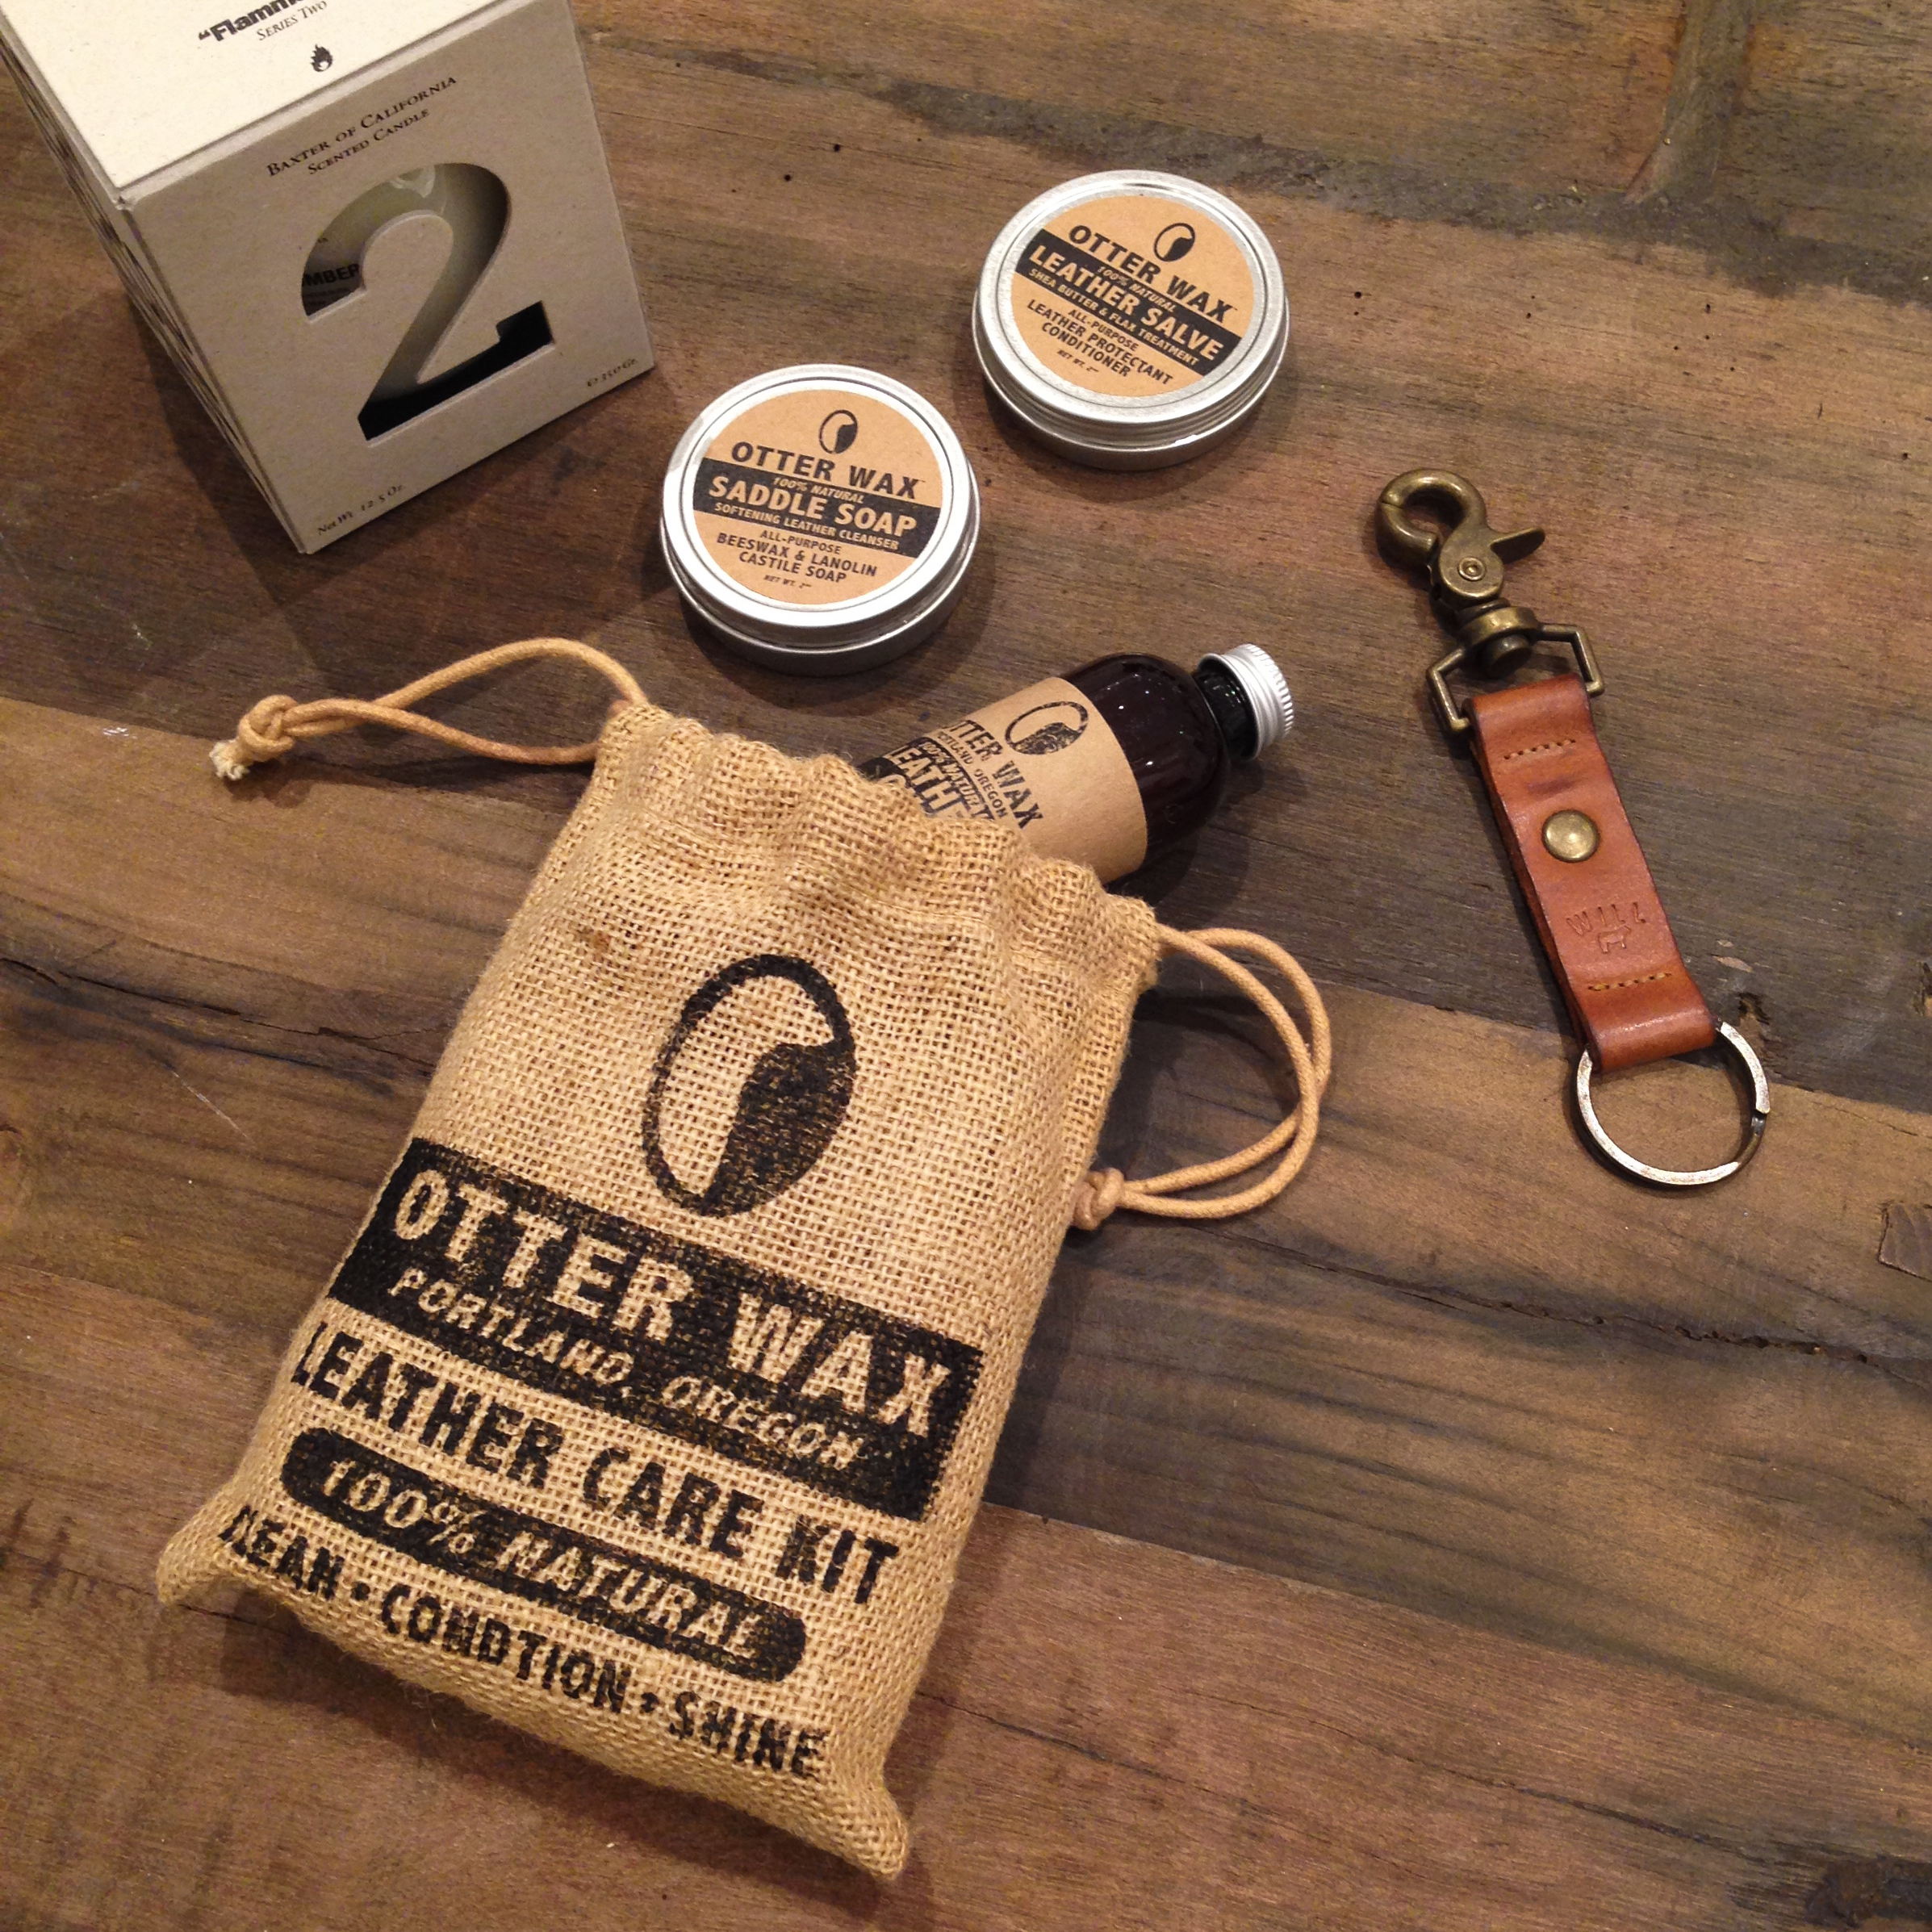 5.   Otter Wax Leather Care Kit   - I'm an Otter. I couldn't resist including a little Otter Wax in my stocking. This Portland company has some greatproducts to protect and maintain your leather through the Winter. It's perfect for guys who are really hard on their boots (like me).If you're investing a couple hundred on a pair meant to last a thousand miles, you need to look after them. Also sold in stores all over--so check out their site for more dets.  6.   Will Leather Goods Key Fob   - We'll call this the West Coast part of the post. Will Leather Goods is based in Cali and all of their leather goods areMade in America. They make awesome bags, but you can never go wrong with a sturdy key ring. Everything is made to last and will better over time. It's a no-brainer.  7.   Baxter of CaliforniaCandle   - Yes, they make candles for men. And they're bro-tastic (yeah, I went there).Baxter is a men's personal care company whomakes some of the best smelling candles out there. They have two series: Wood and Ash. The Wood have clean scents that aren't floral like most candles. My favorite is Number 1, but all 3 are regulars in my apartment. The Ash Series smell exactly how they sound. Smoke Ash is like a camp fire in your apartment. It's a great gift for any man cave.